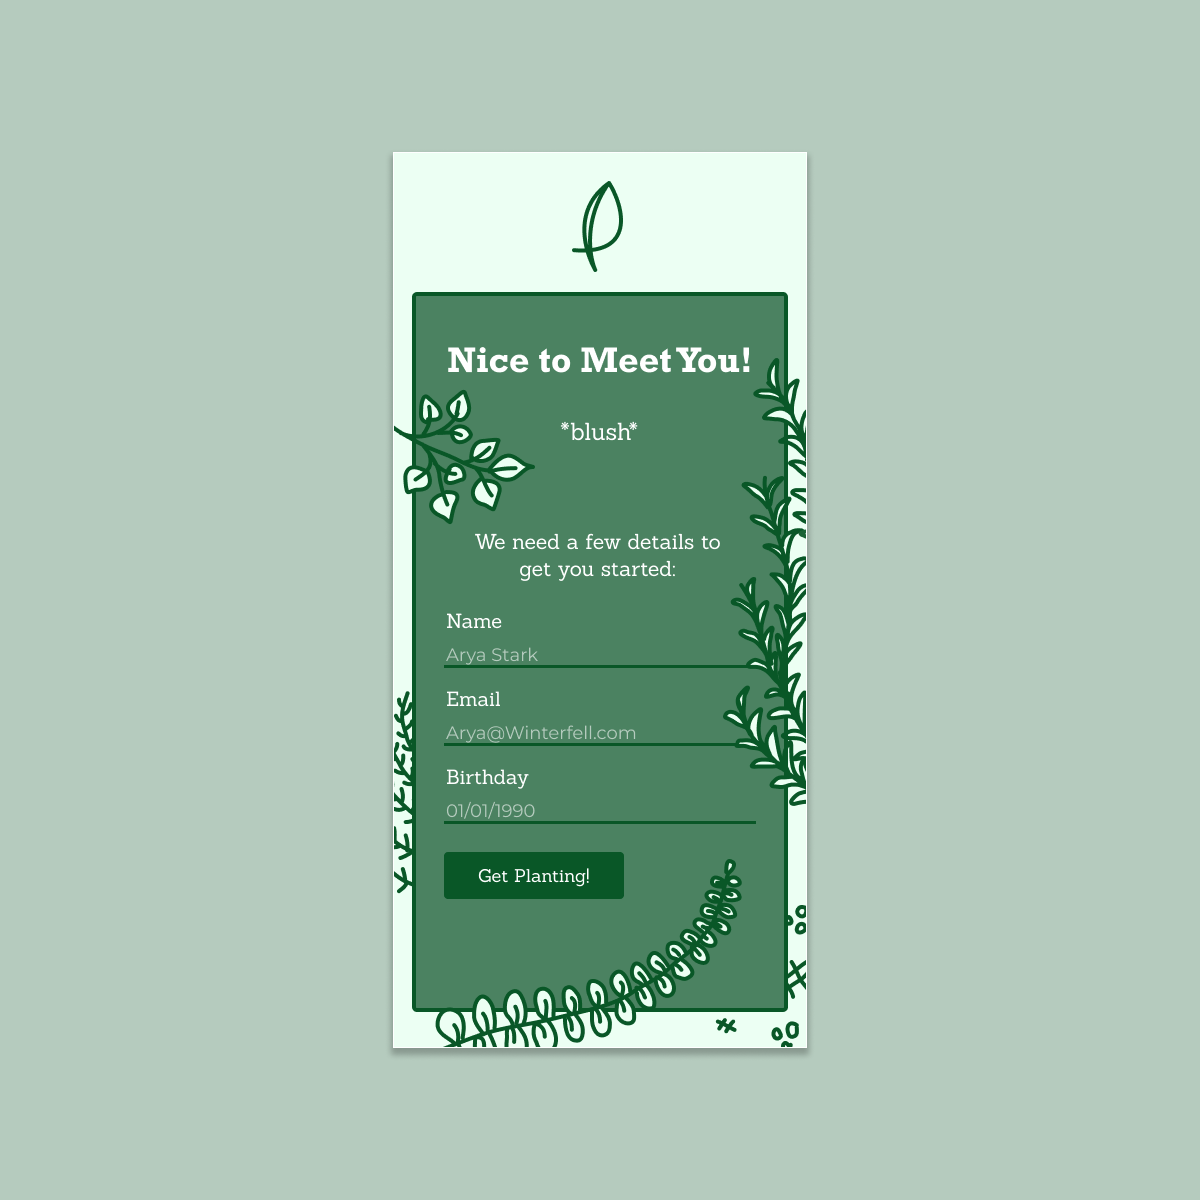 a one screen UI login page with illustrated plants and a logo.